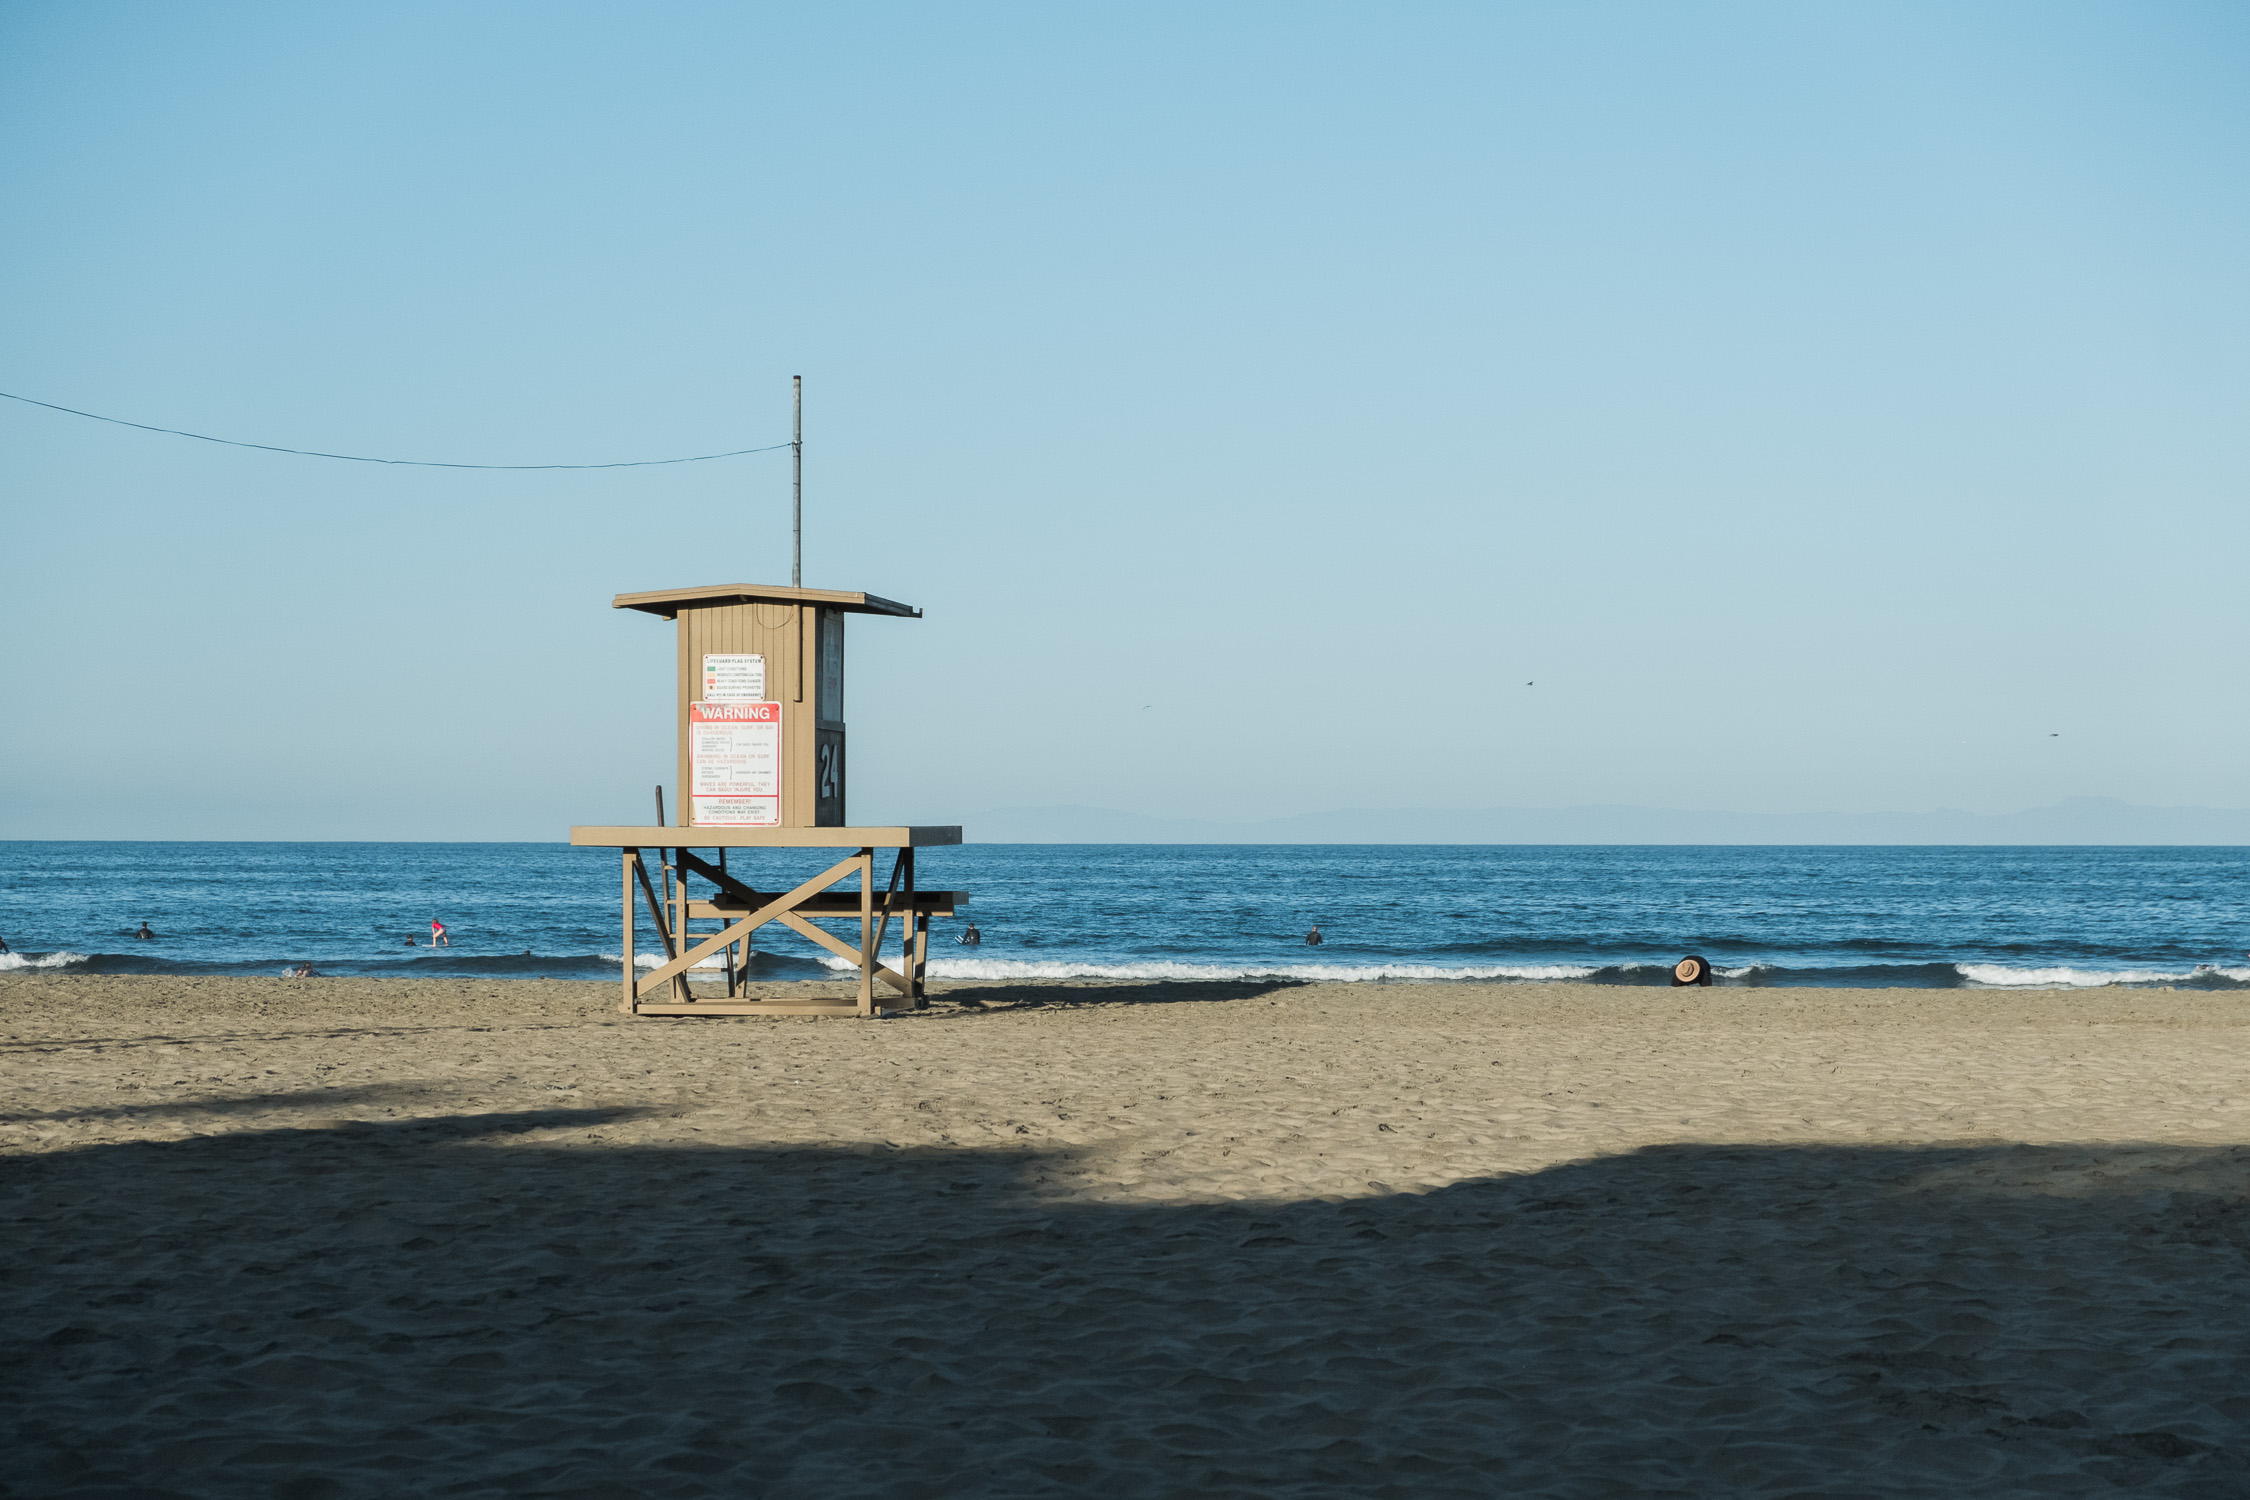 Newport Beach Lifeguard station